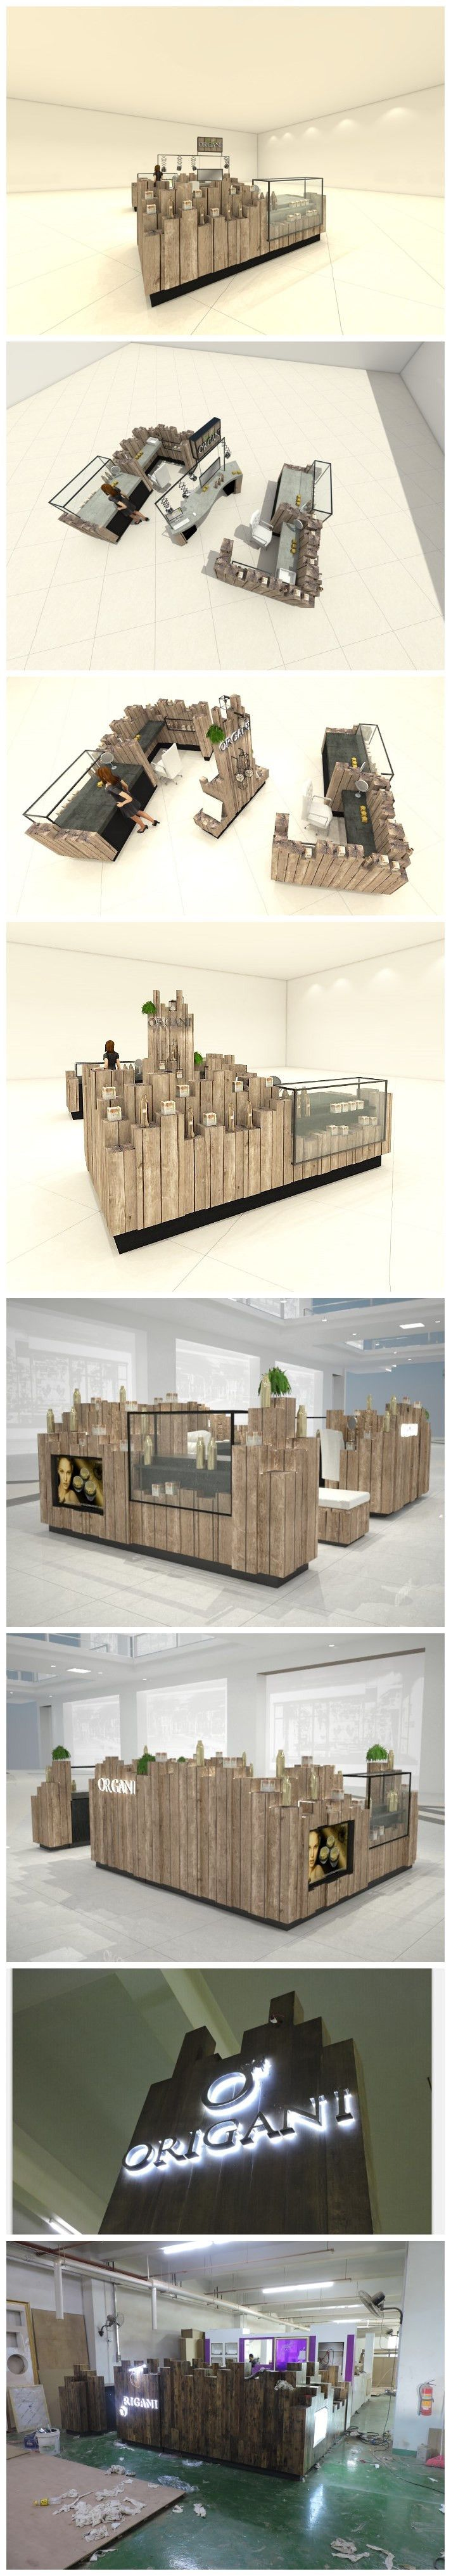 Origani Mall Kiosk, solid wood made from China to Worldwide